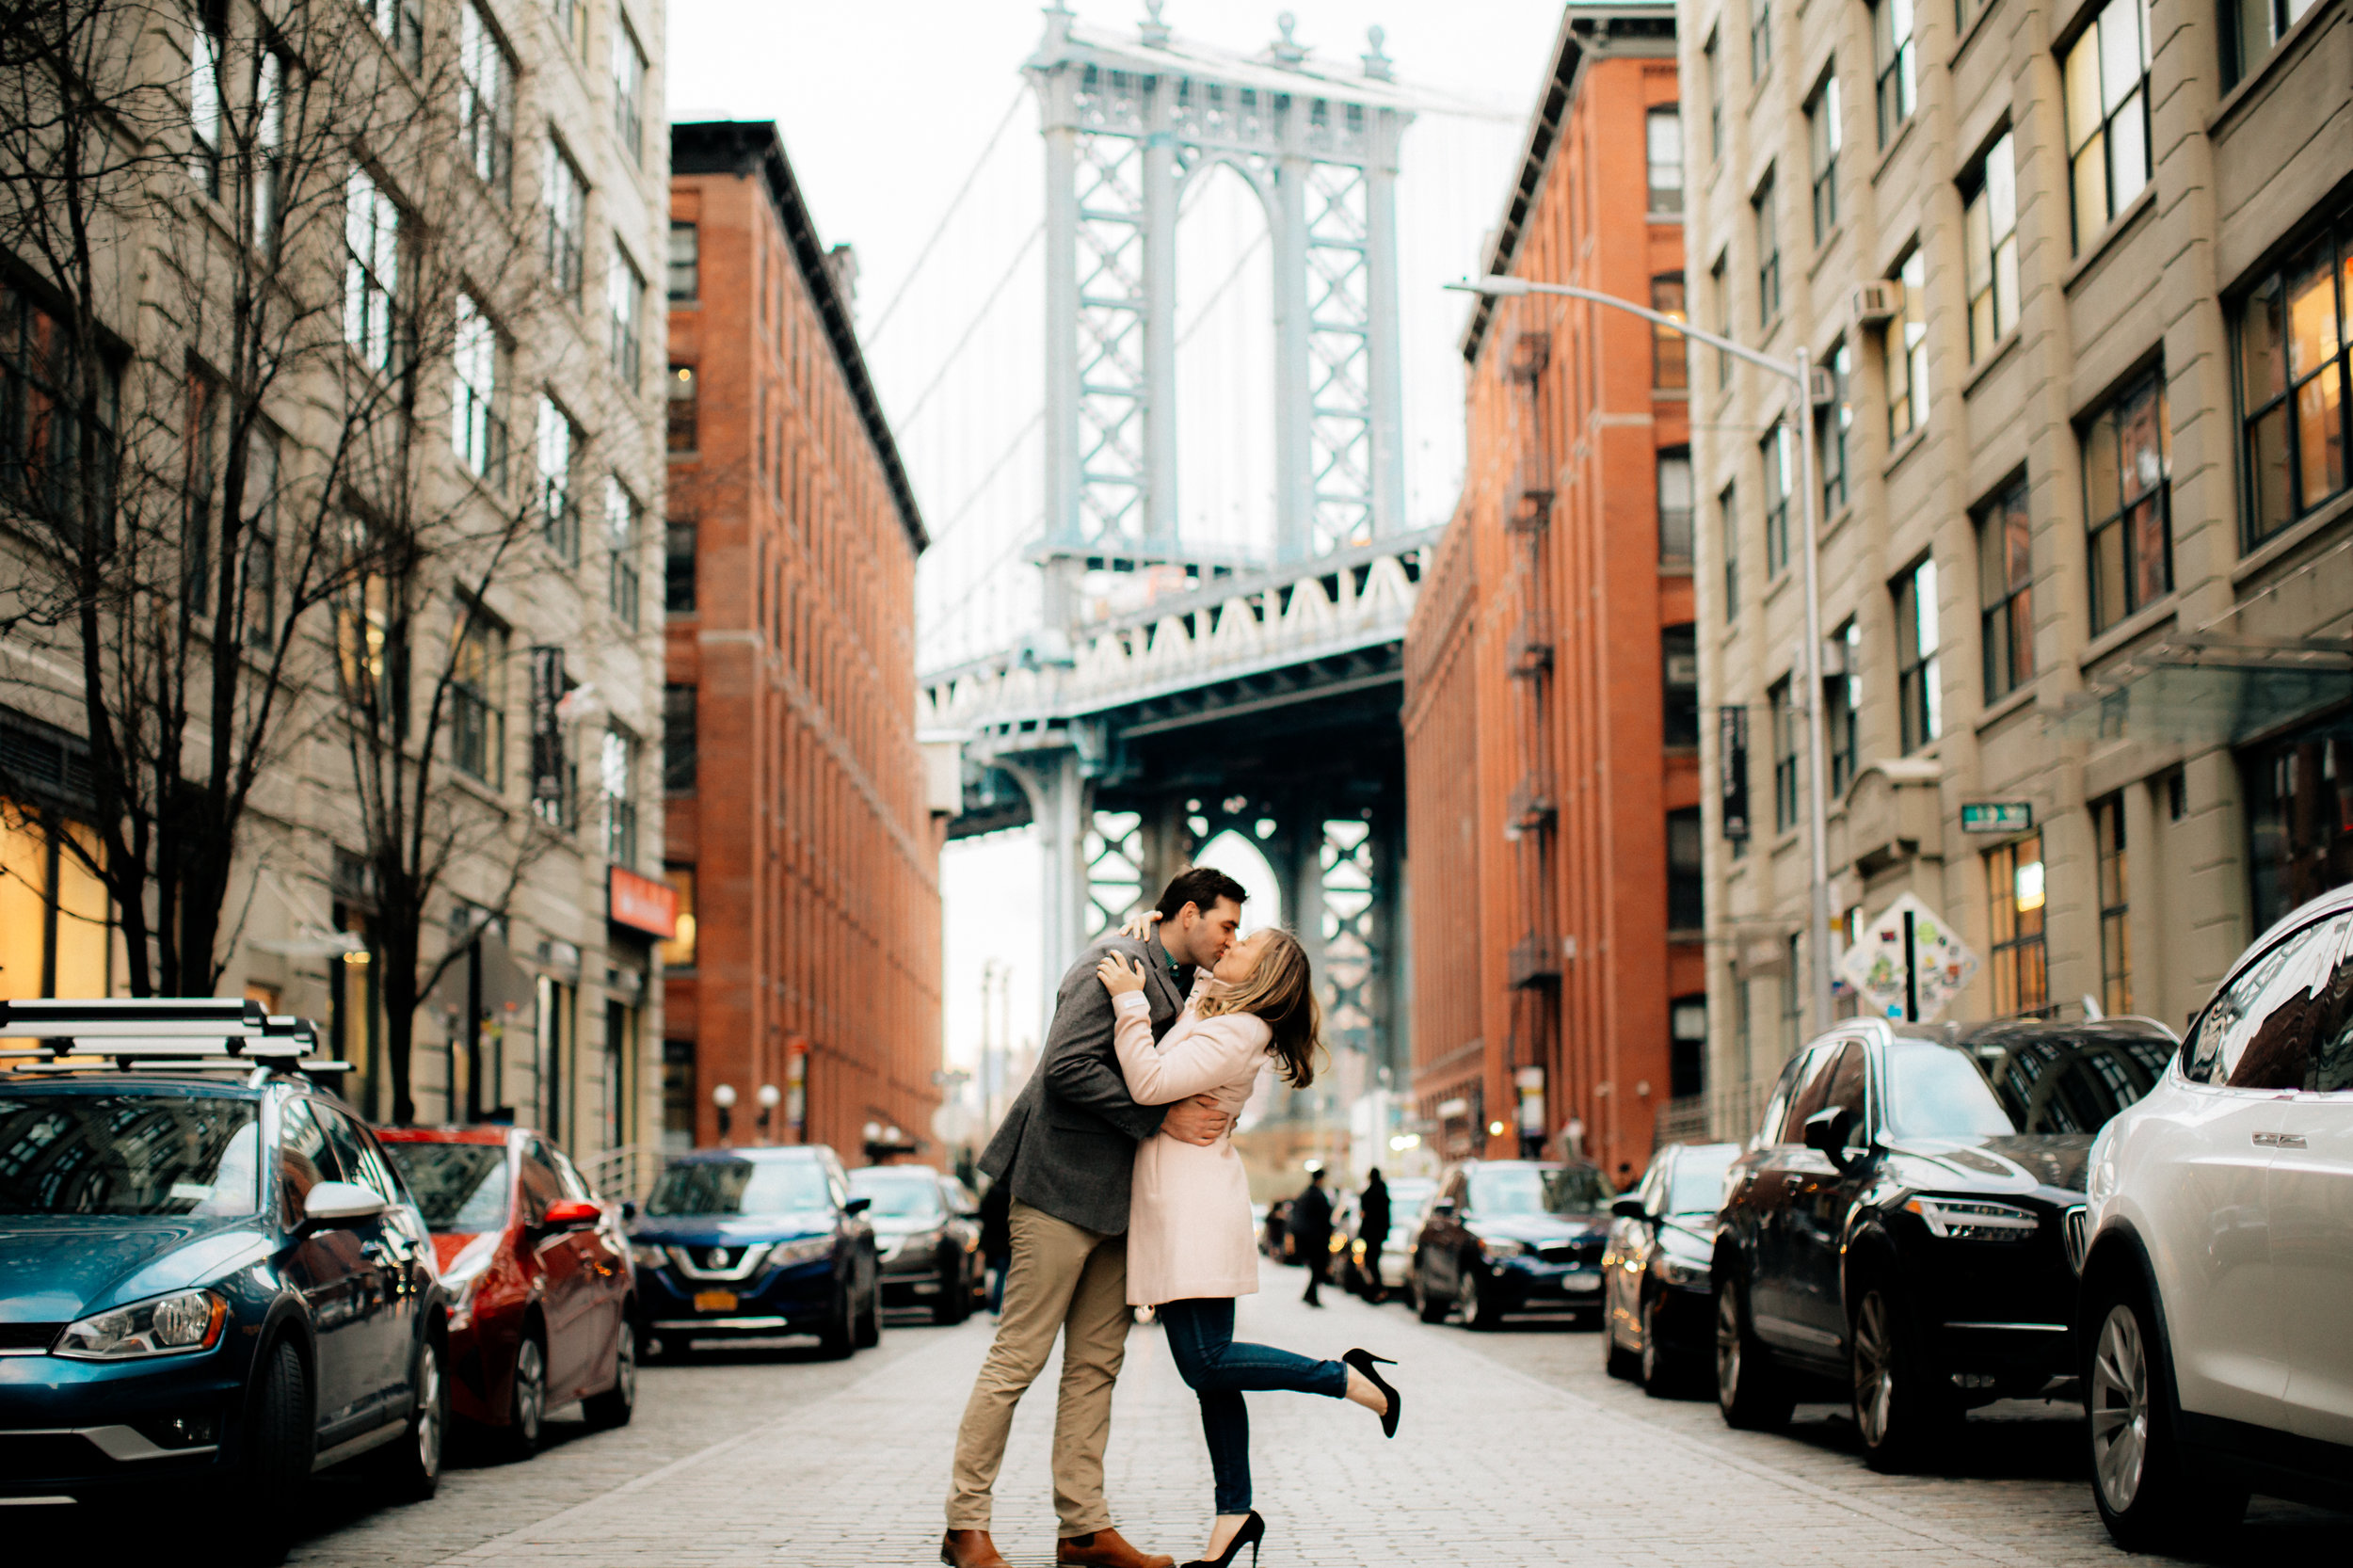 brooklyn-ny-engagement-photographer-4.jpg